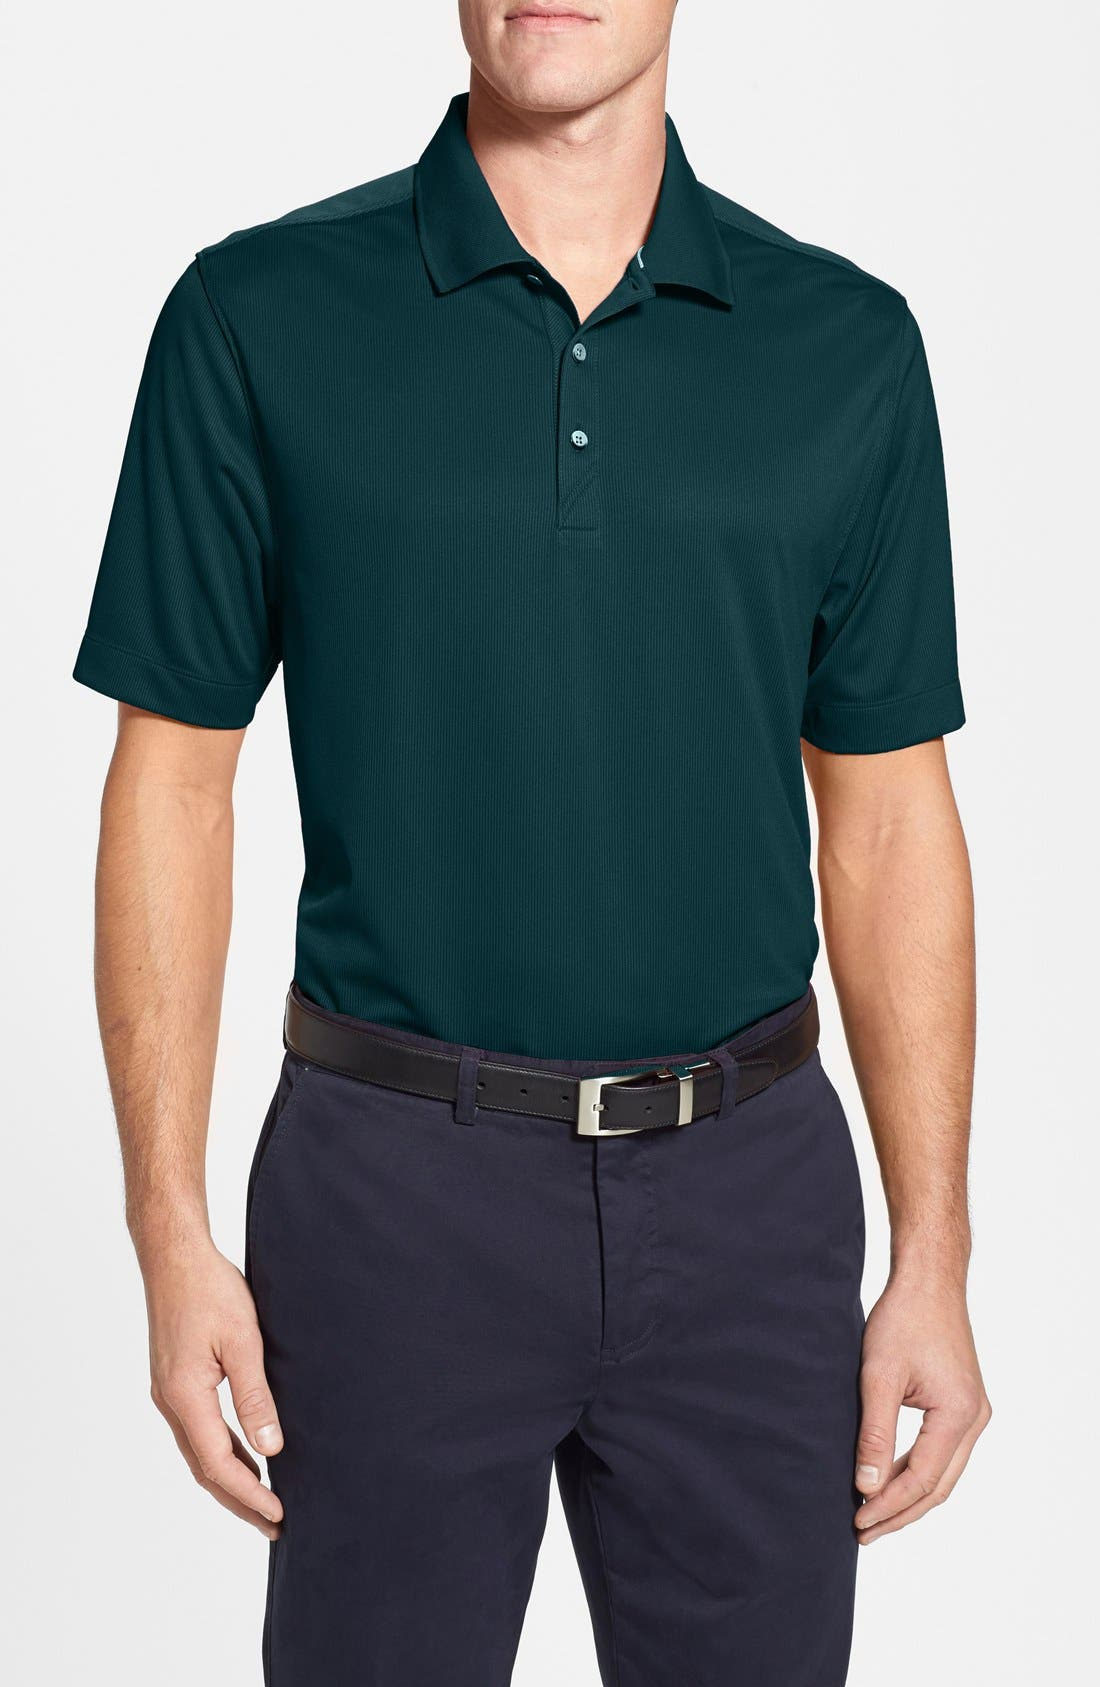 Glendale DryTec Moisture Wicking Polo,                             Main thumbnail 1, color,                             Midnight Green